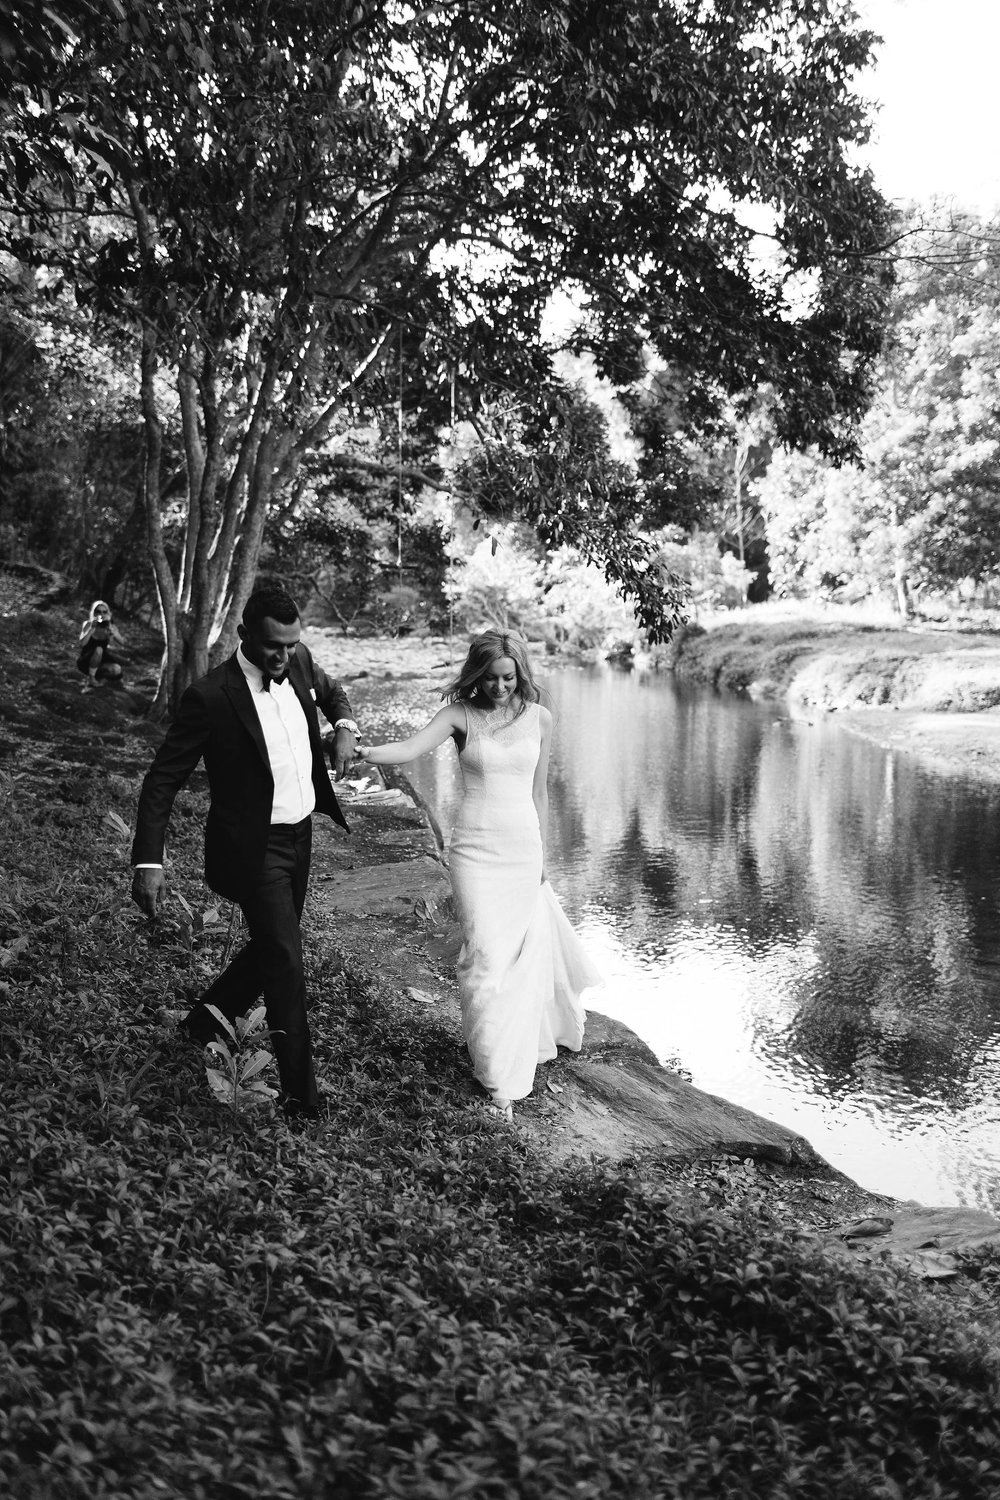 wedding_photography_port_douglas_0134-min.jpg